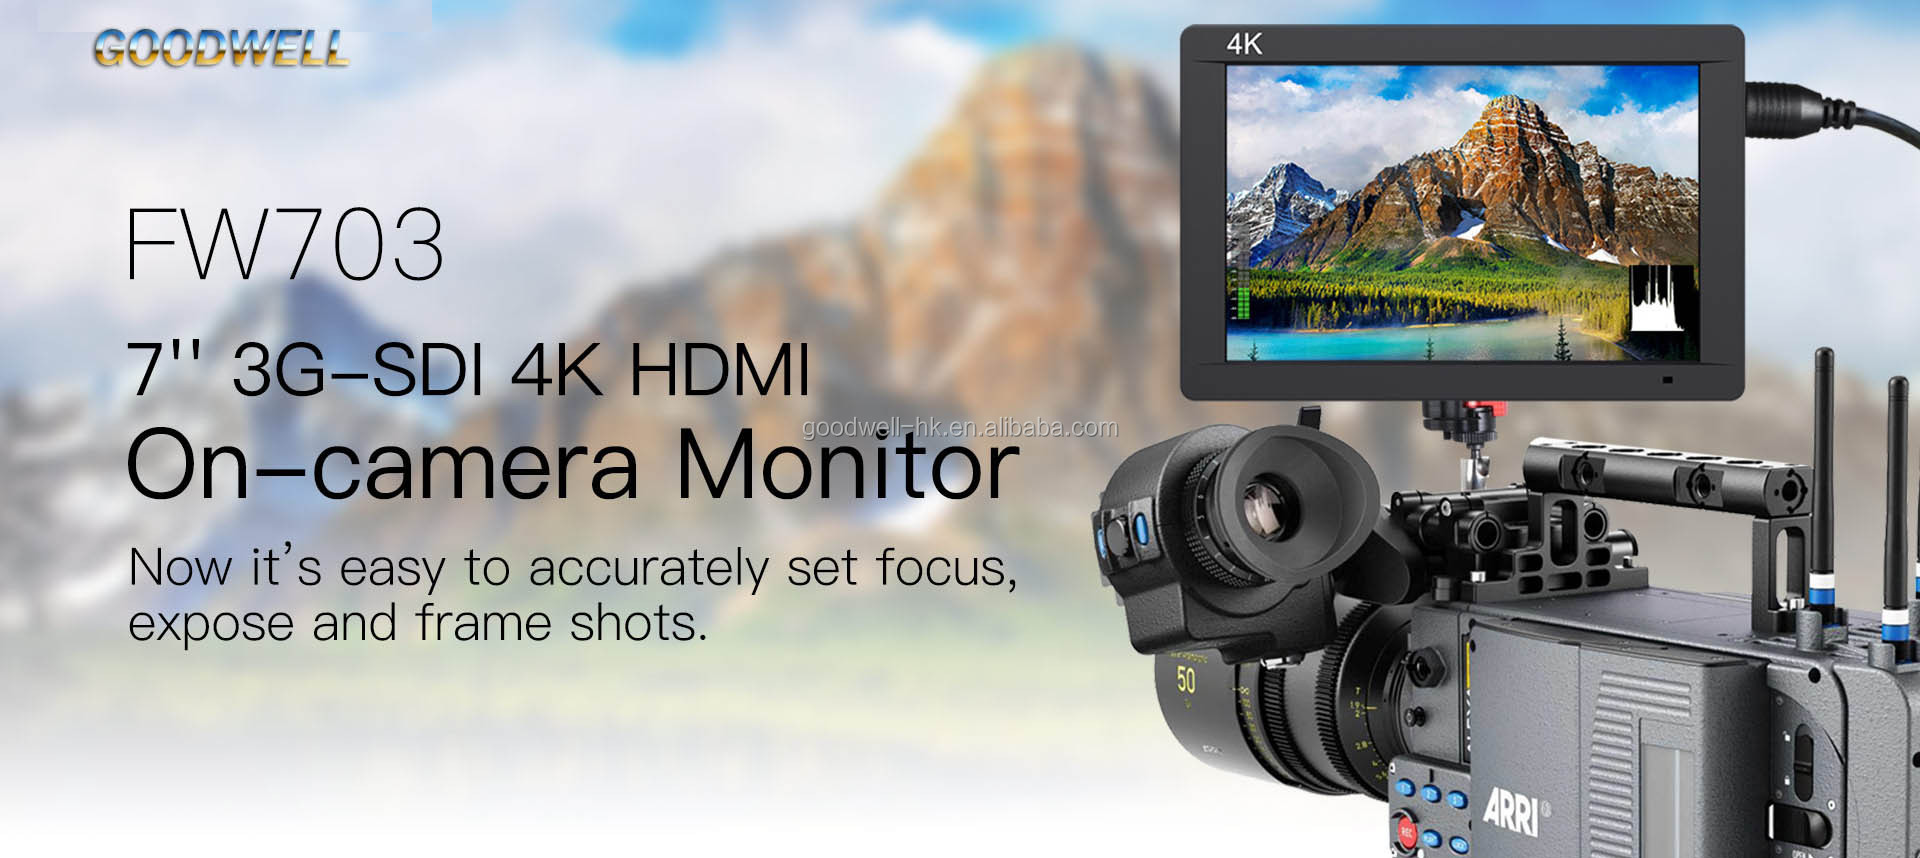 "4K HDMI 7"" 3G SDI Broadcast Professional LCD Monitor 1920x 1200 IPS Panel with 450cd/m2 High Brightness"